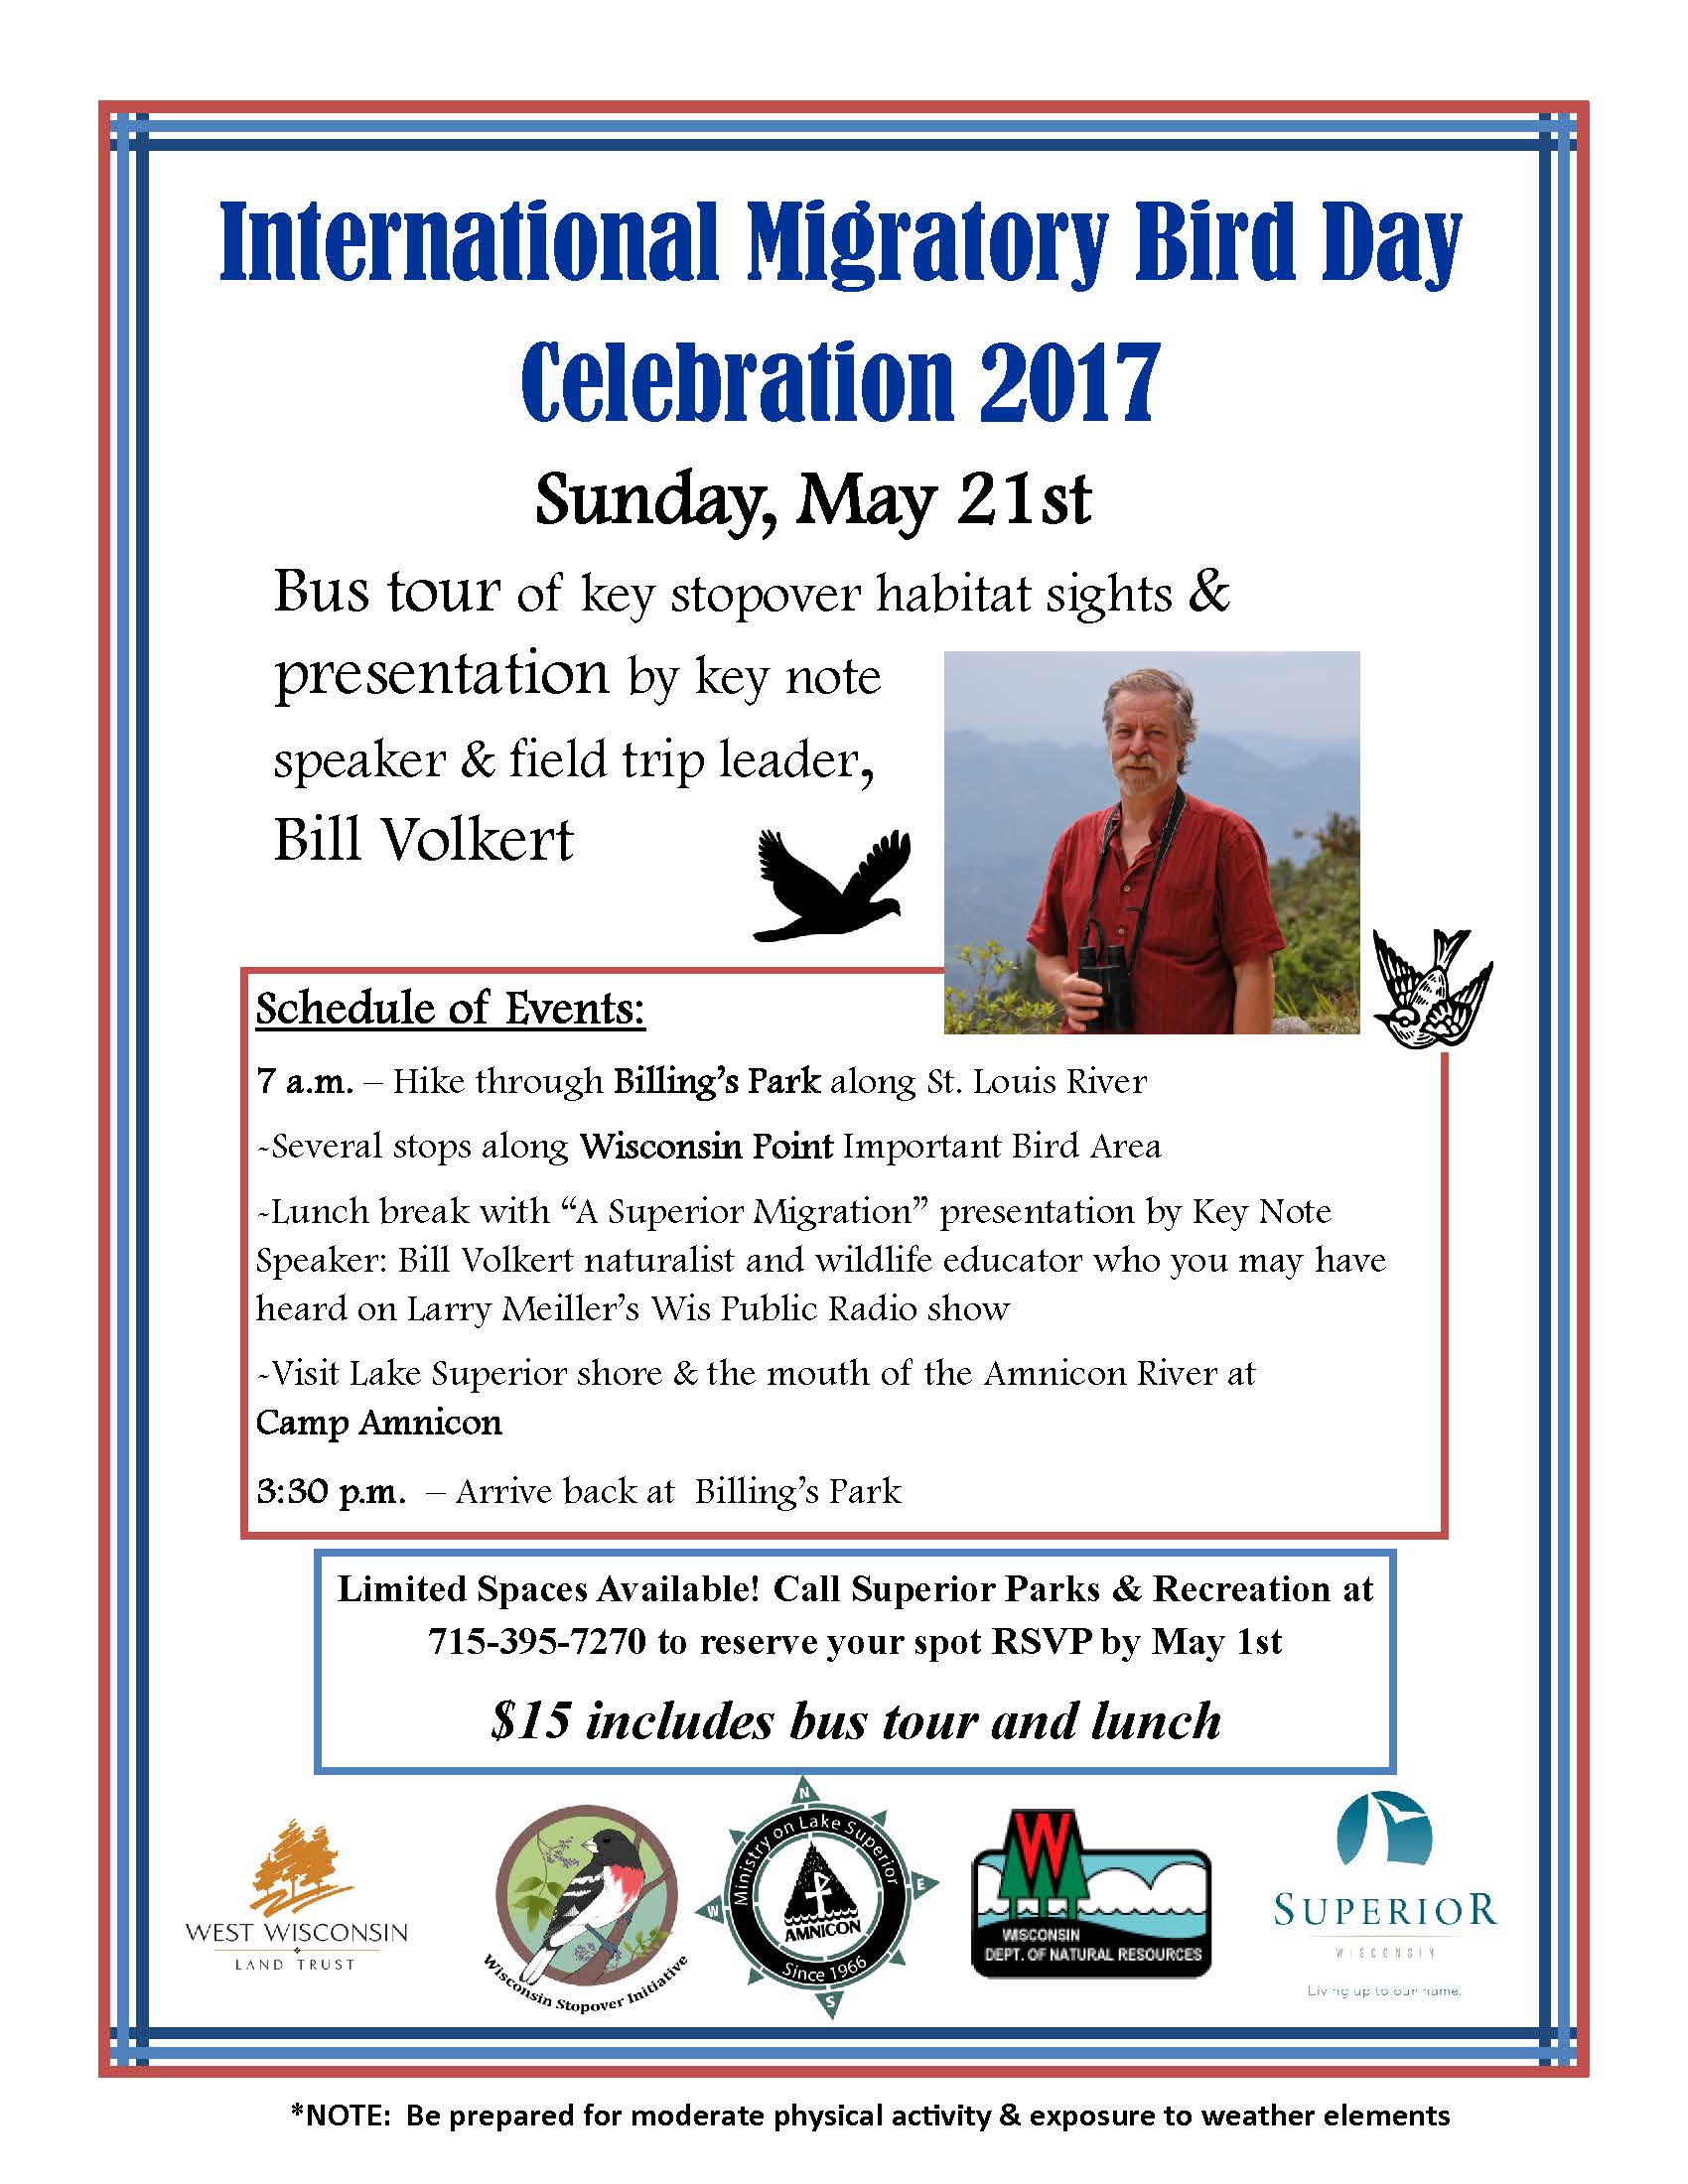 Int Migratory Bird Day Celebration2 2017.jpg